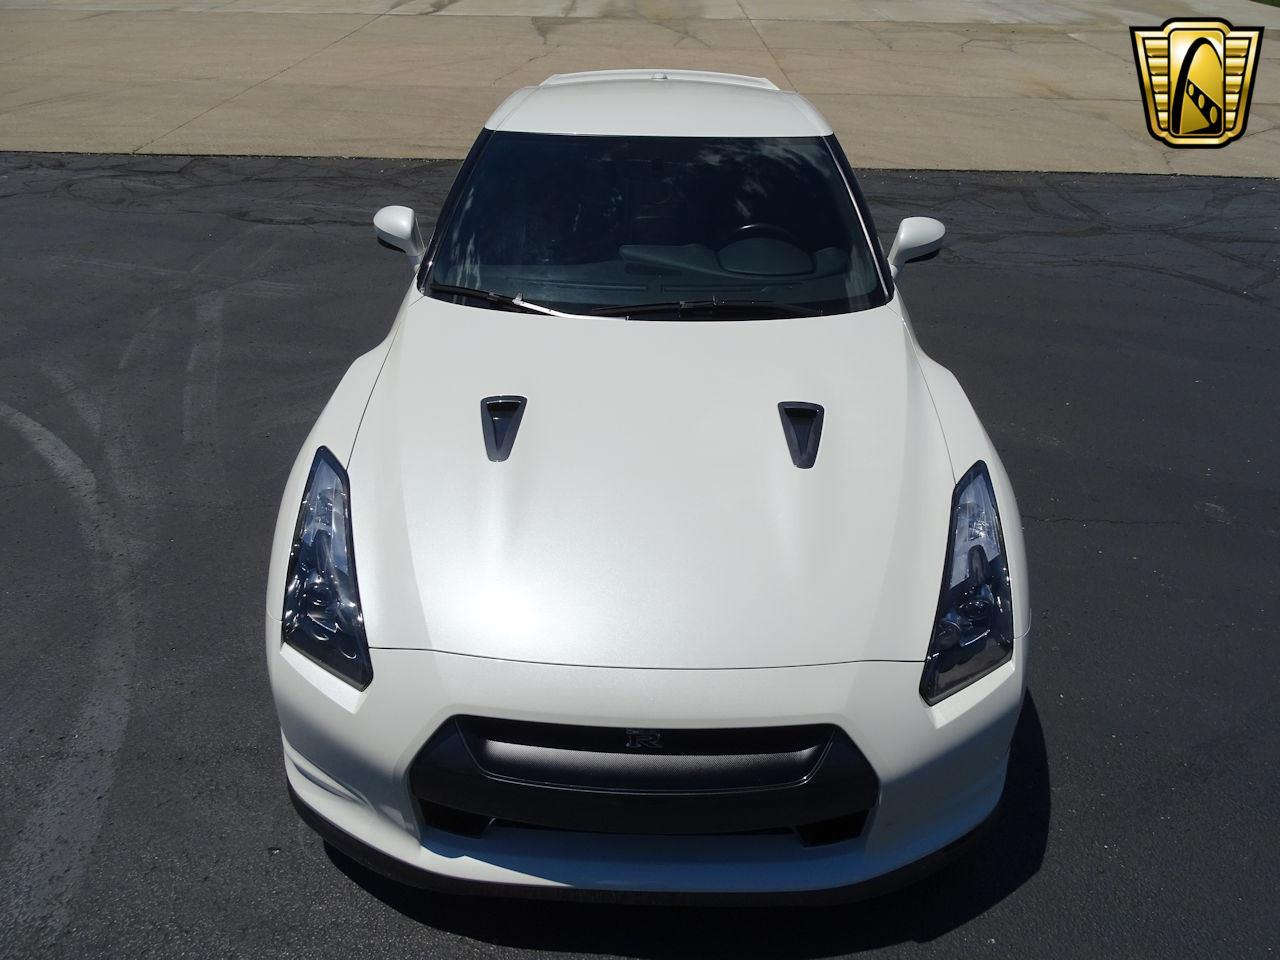 Large Picture of 2010 Nissan GT-R located in Indiana Offered by Gateway Classic Cars - Indianapolis - L8WR